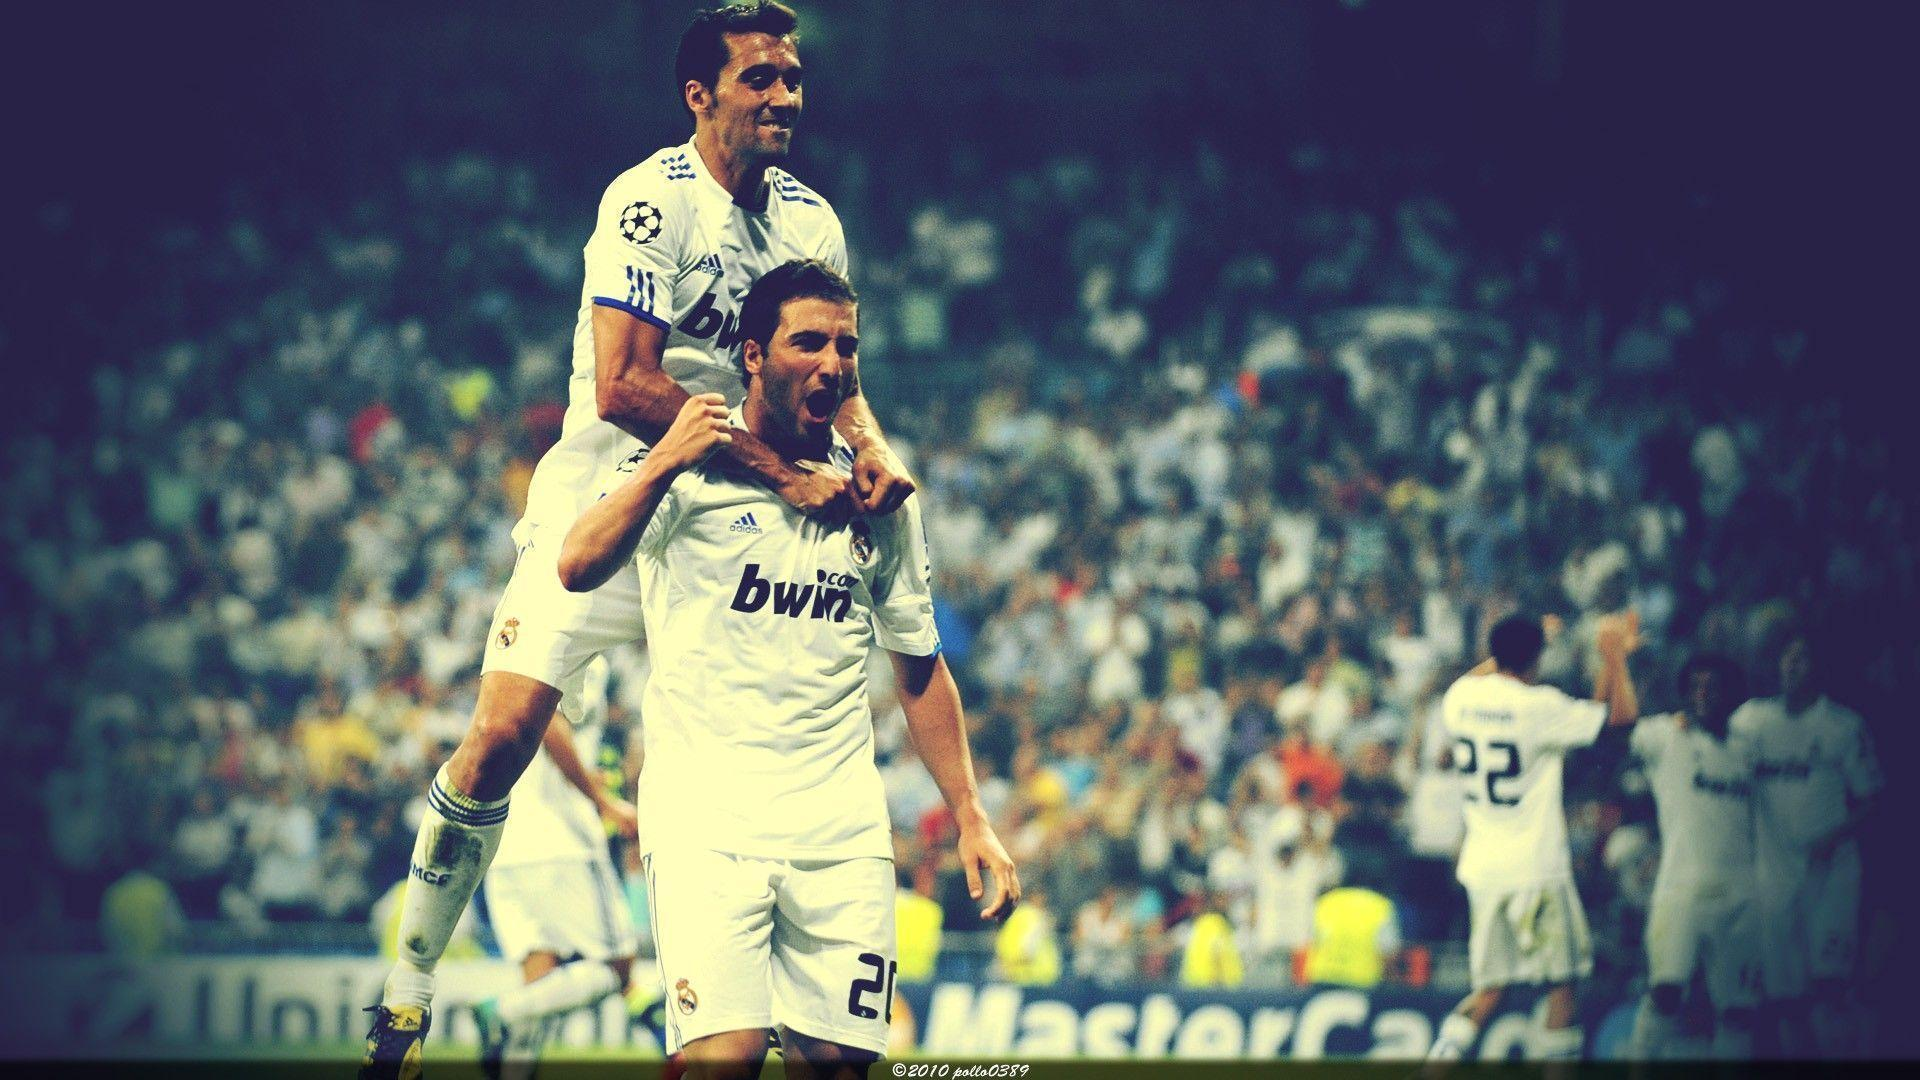 Real Madrid Wallpaper Hd 1920x1080 #856 Wallpaper | lookwallpapers.com